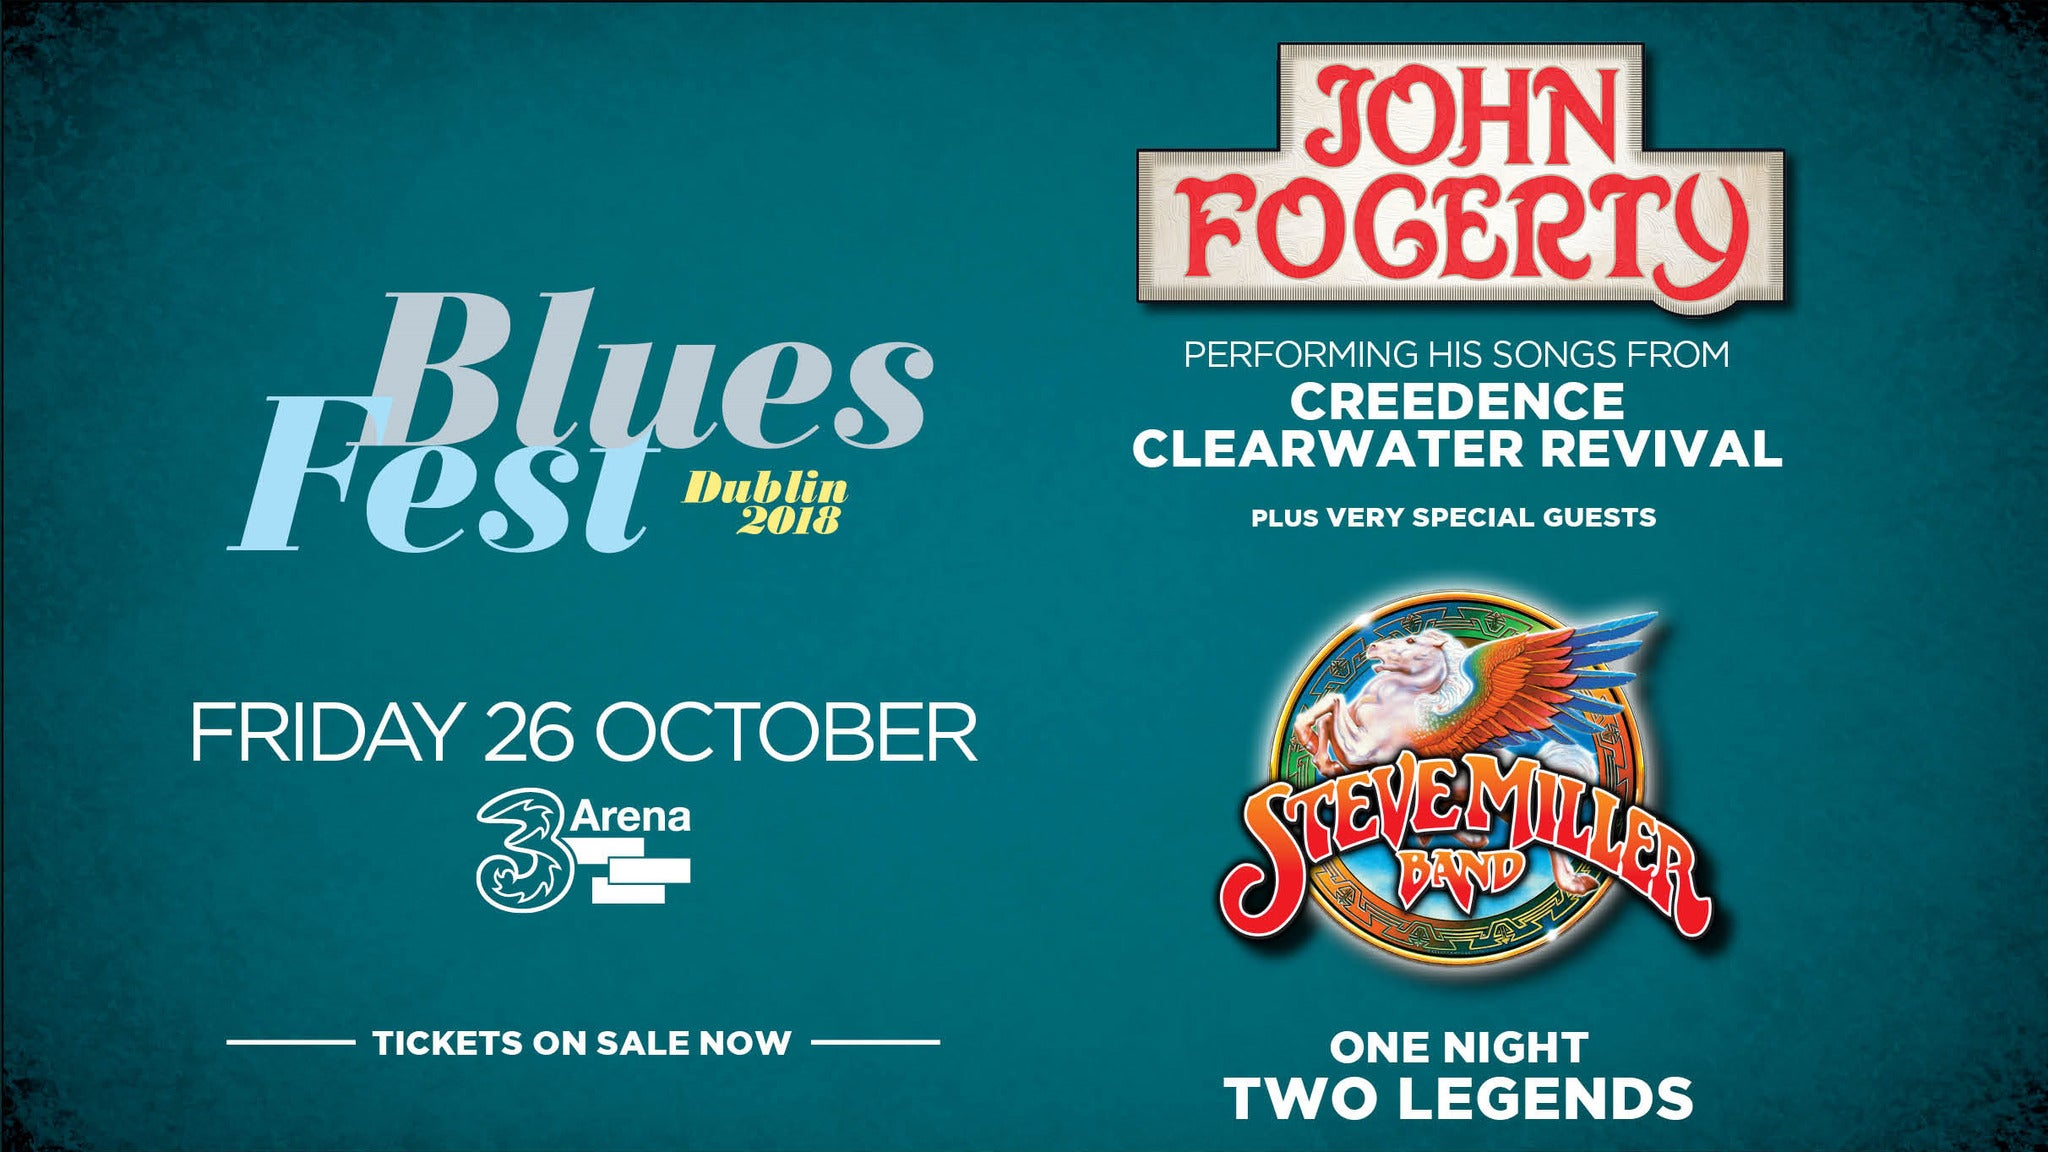 Image used with permission from Ticketmaster | Bluesfest 2022 tickets